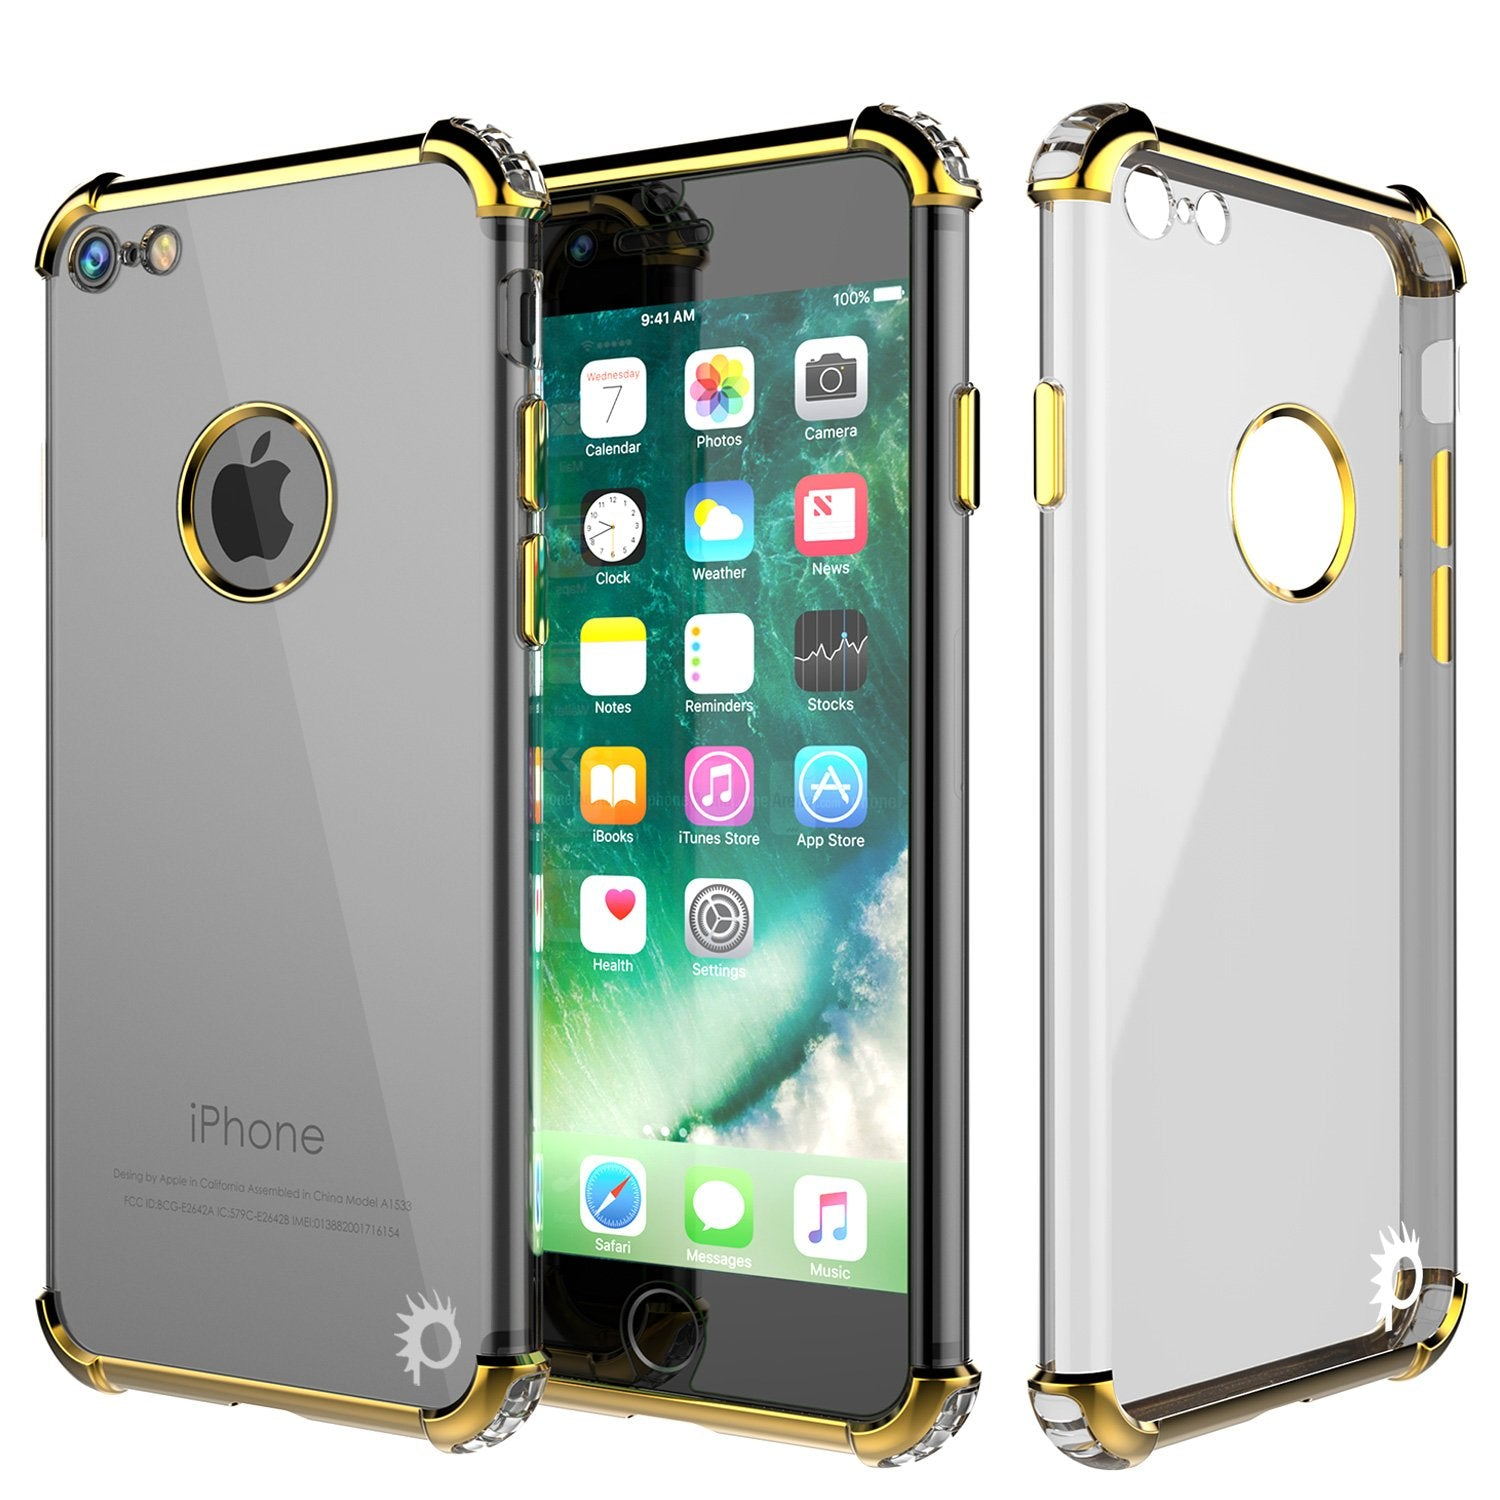 iPhone 8 Case, Punkcase [BLAZE SERIES] Protective Cover W/ PunkShield Screen Protector [Shockproof] [Slim Fit] for Apple iPhone [Gold]